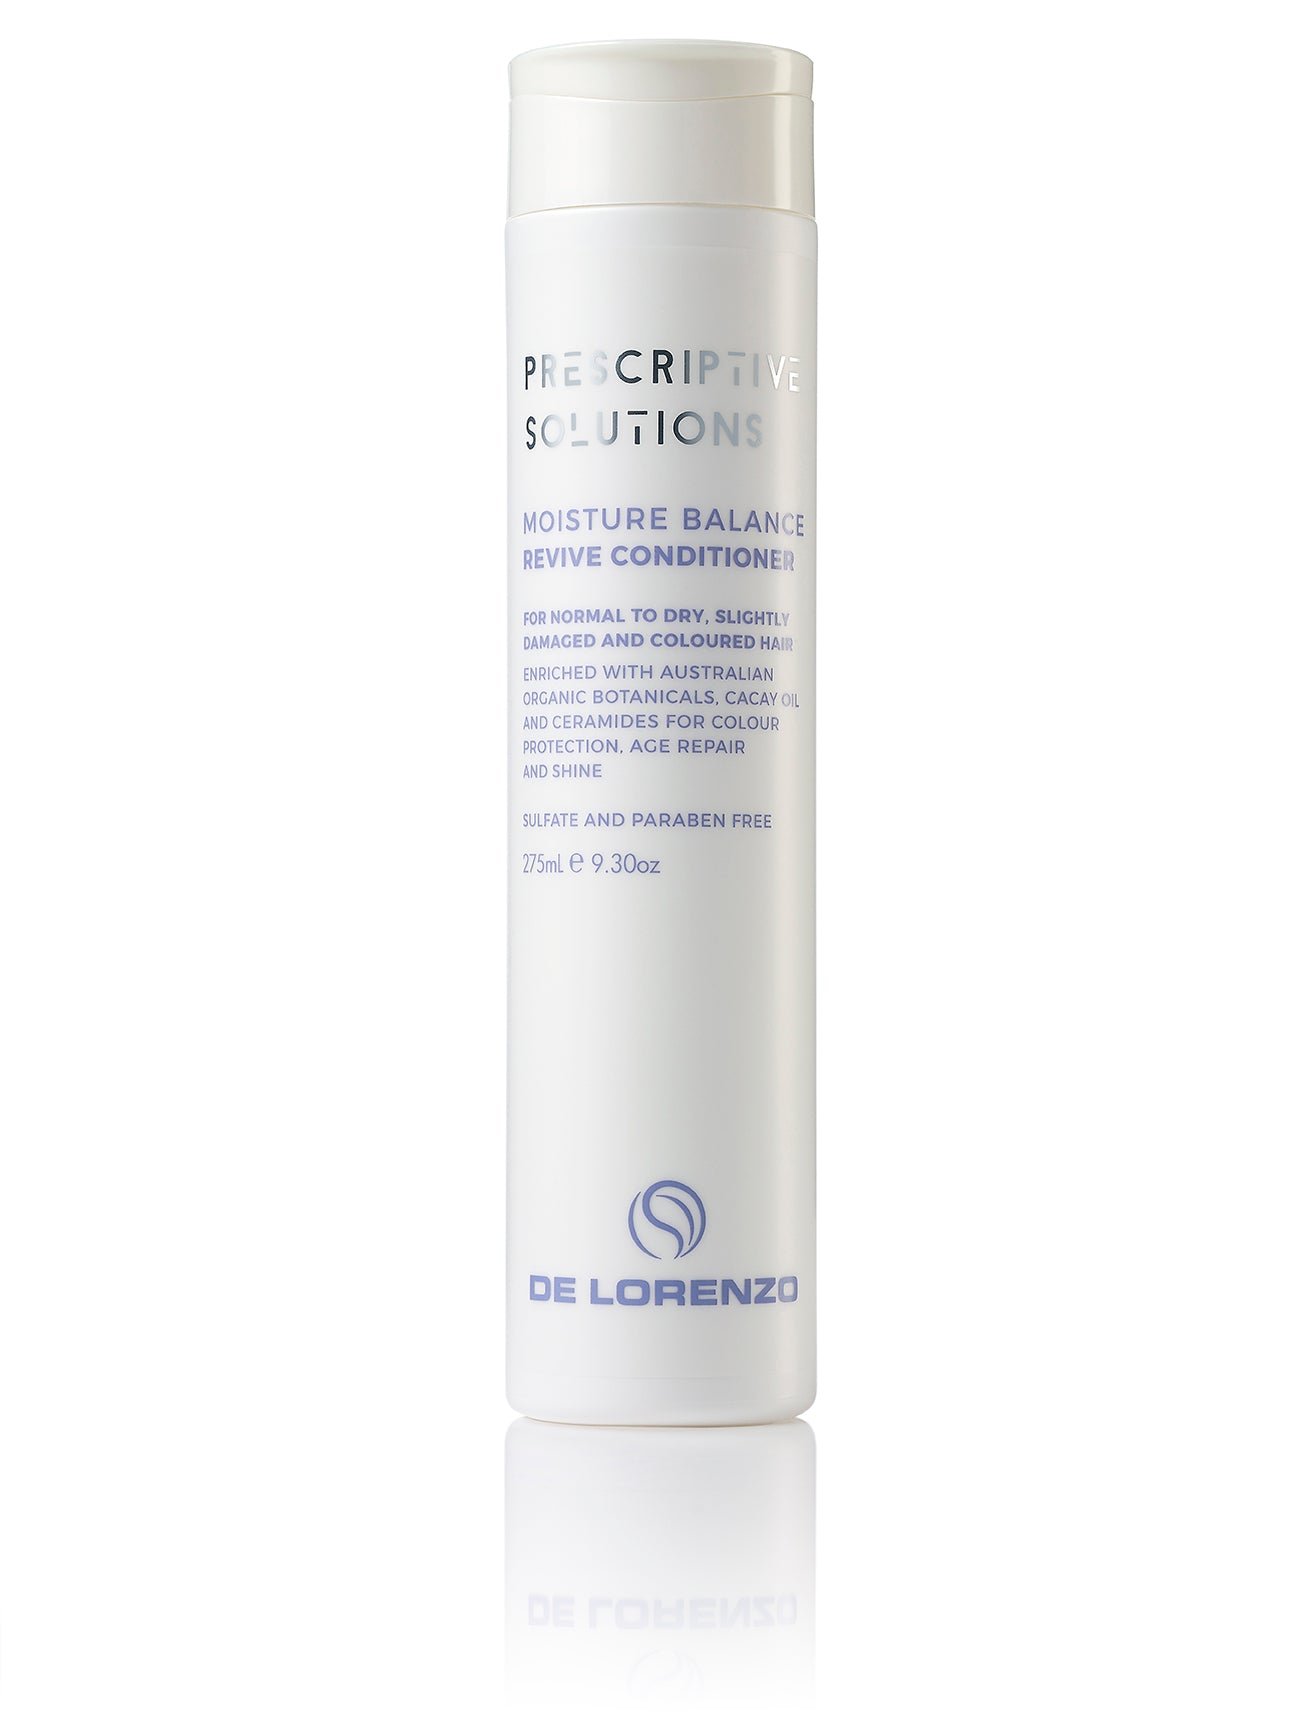 Moisture Balance Revive Conditioner